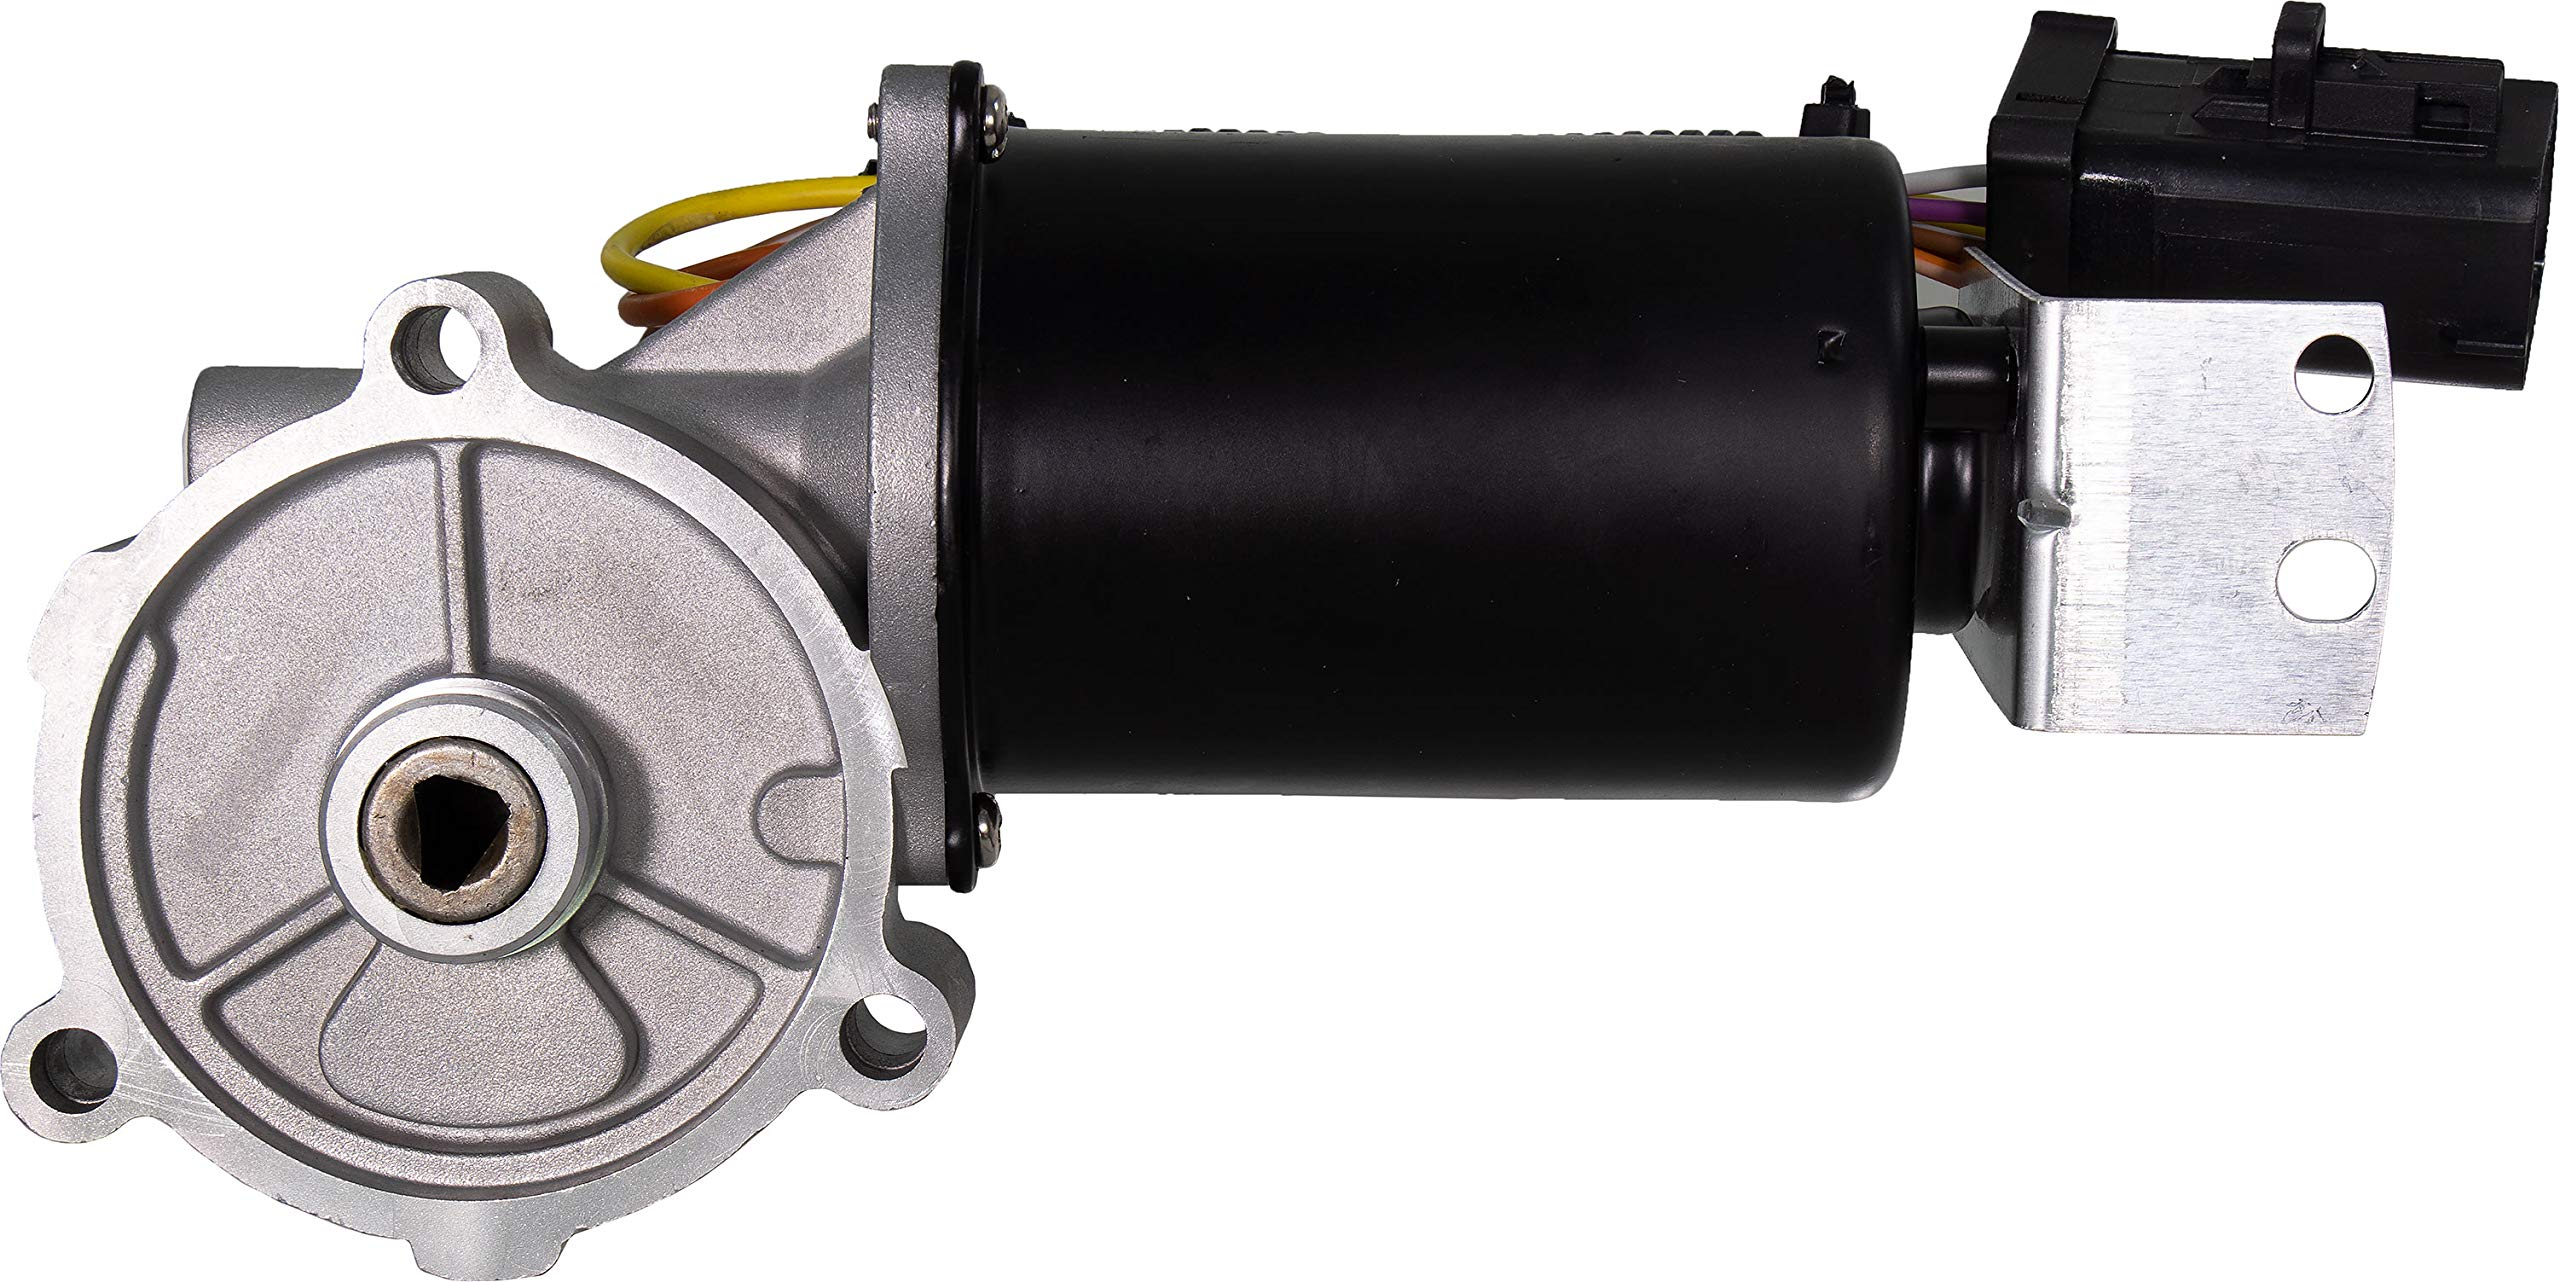 ECCPP Transfer Case Motor Fit for 1997-2002 for Ford Expedition 1996-2003 for Ford F-150 1996-1999 for Ford F-250 2001-2003 for Ford Lobo 1998-2002 for Lincoln Navigator